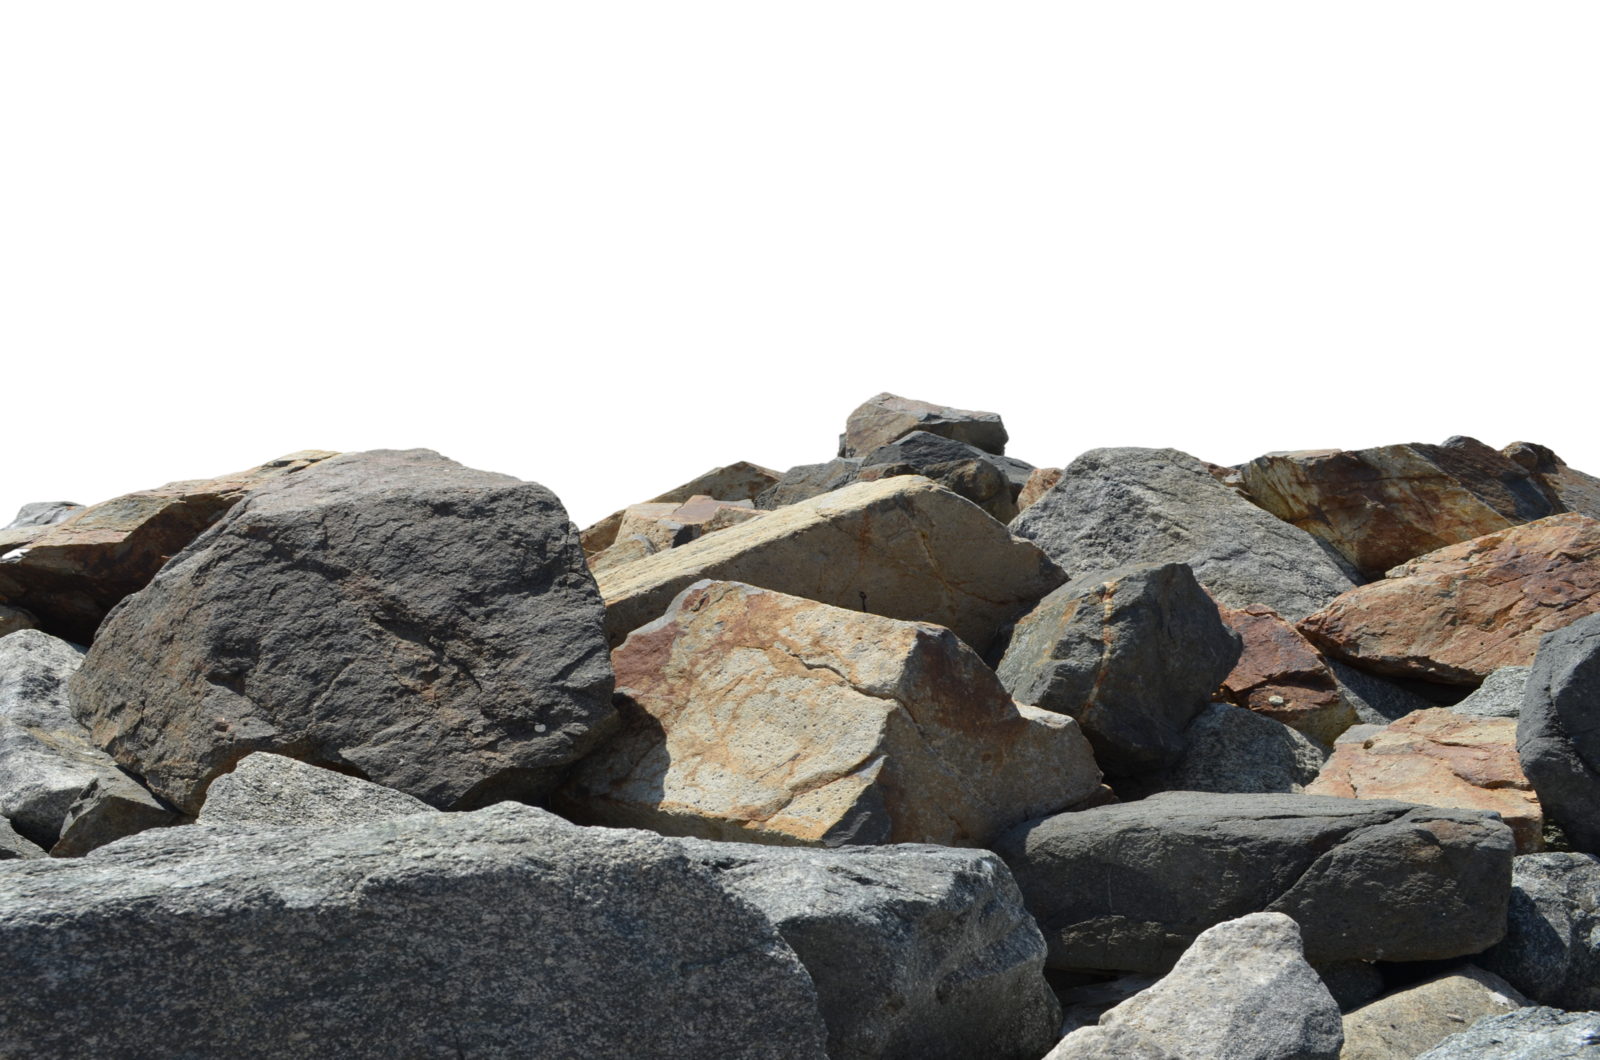 Rocks .png. Rock png images transparent